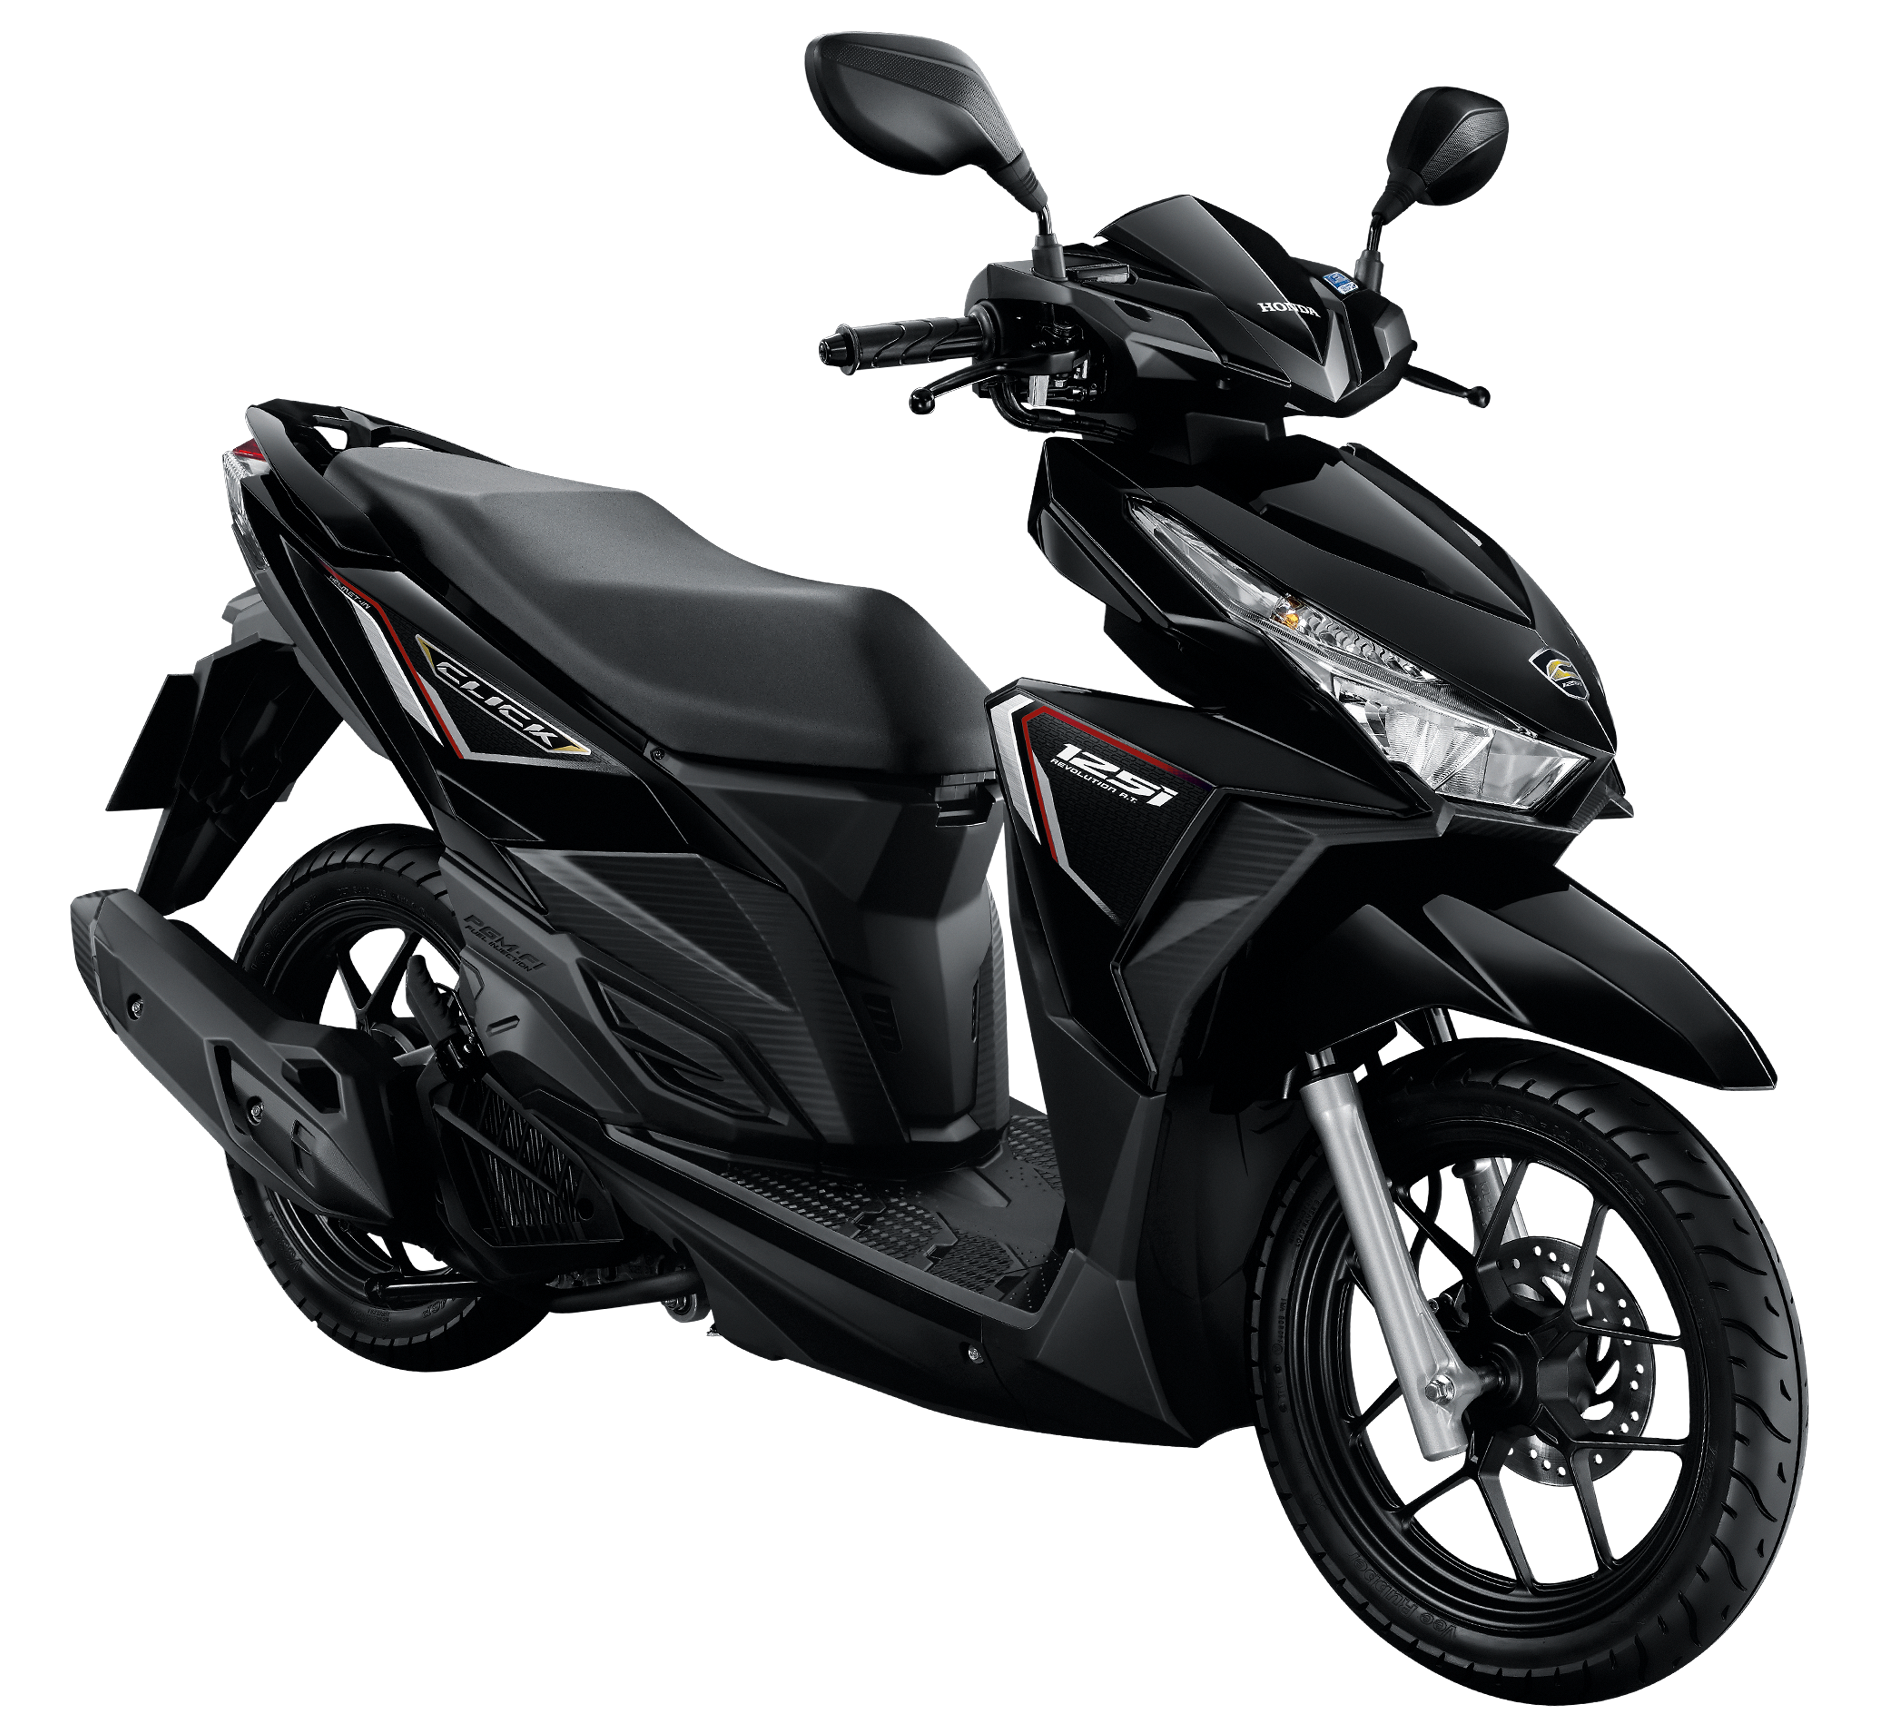 AP Honda aggressively penetrates the market with launch of 4 models | komarjohari